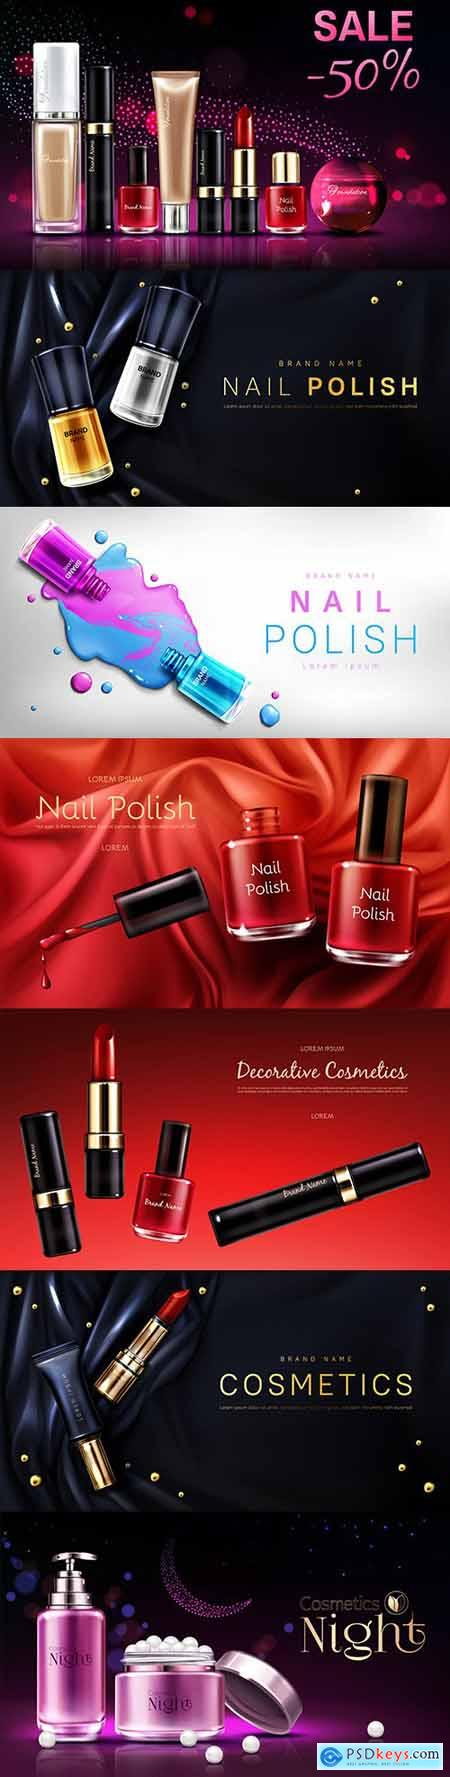 Women s decorative cosmetics products realistic advertising banner